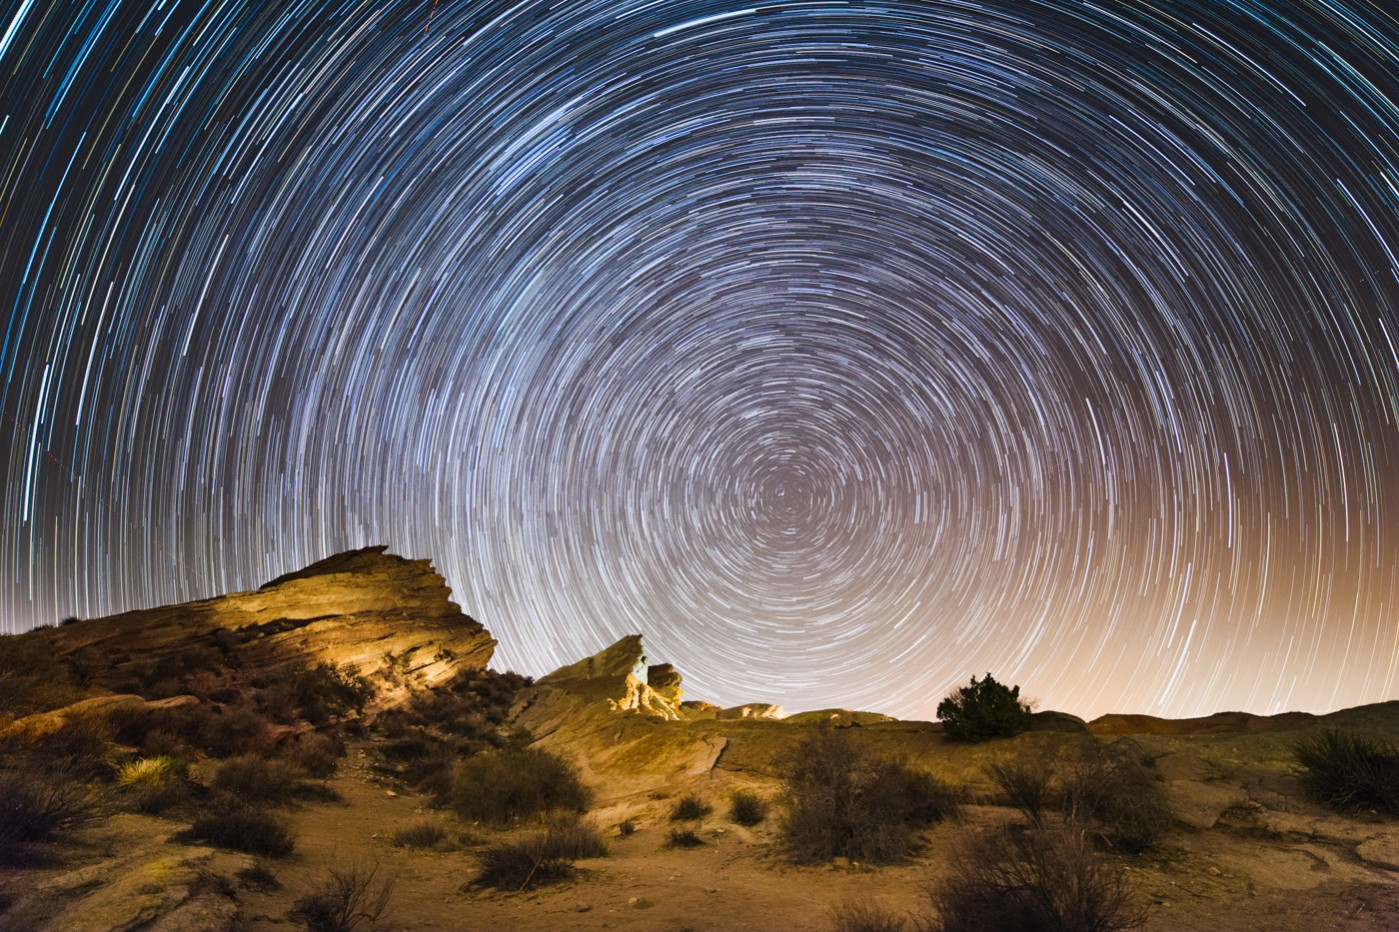 Star Trails with an Intervalometer